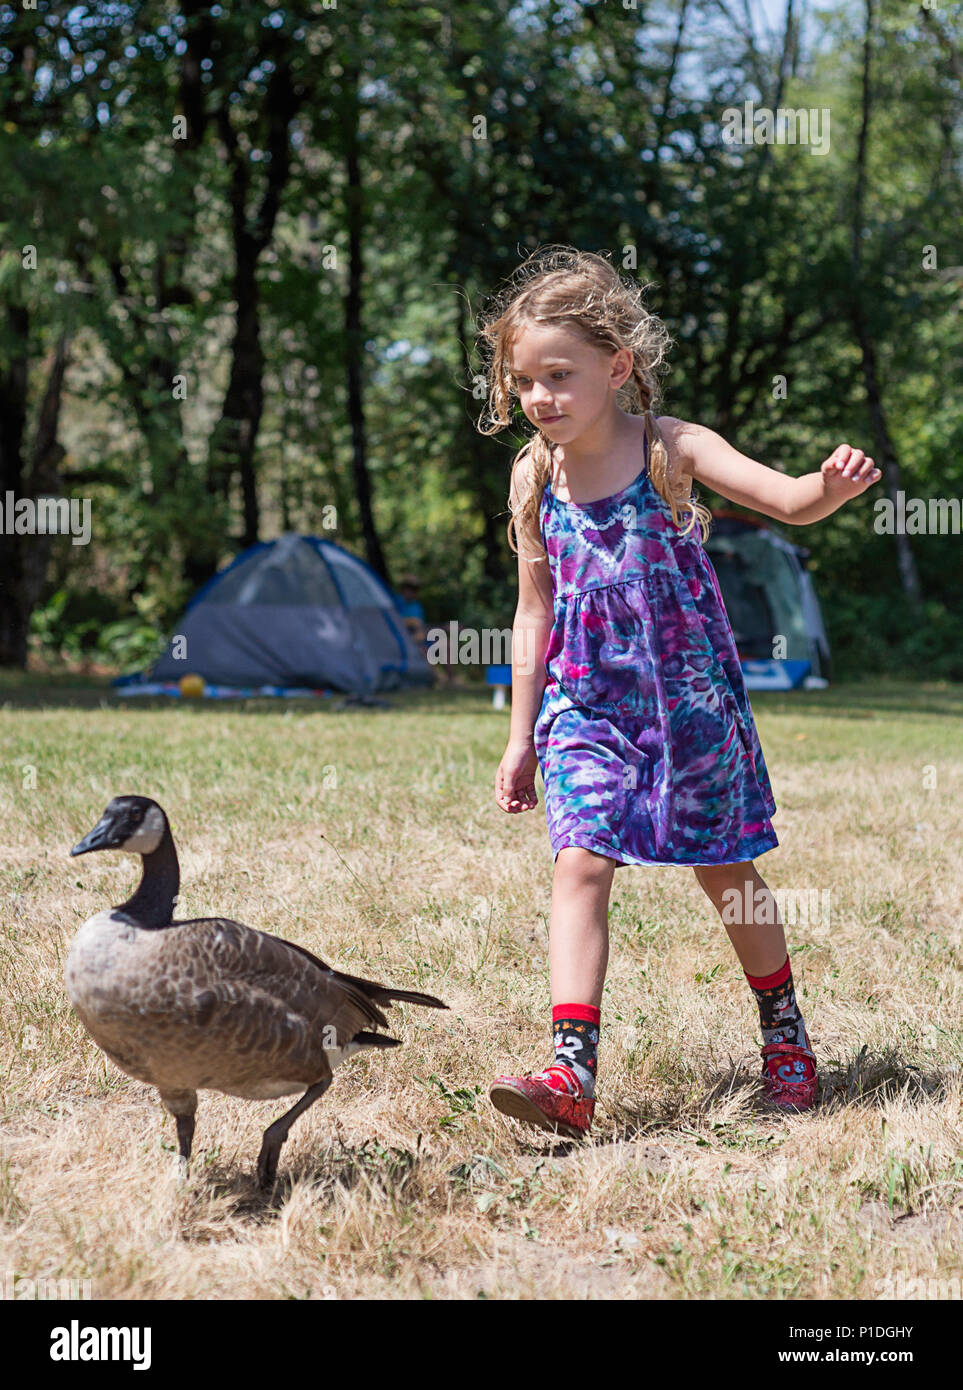 A young girl chasing off a wild goose. - Stock Image